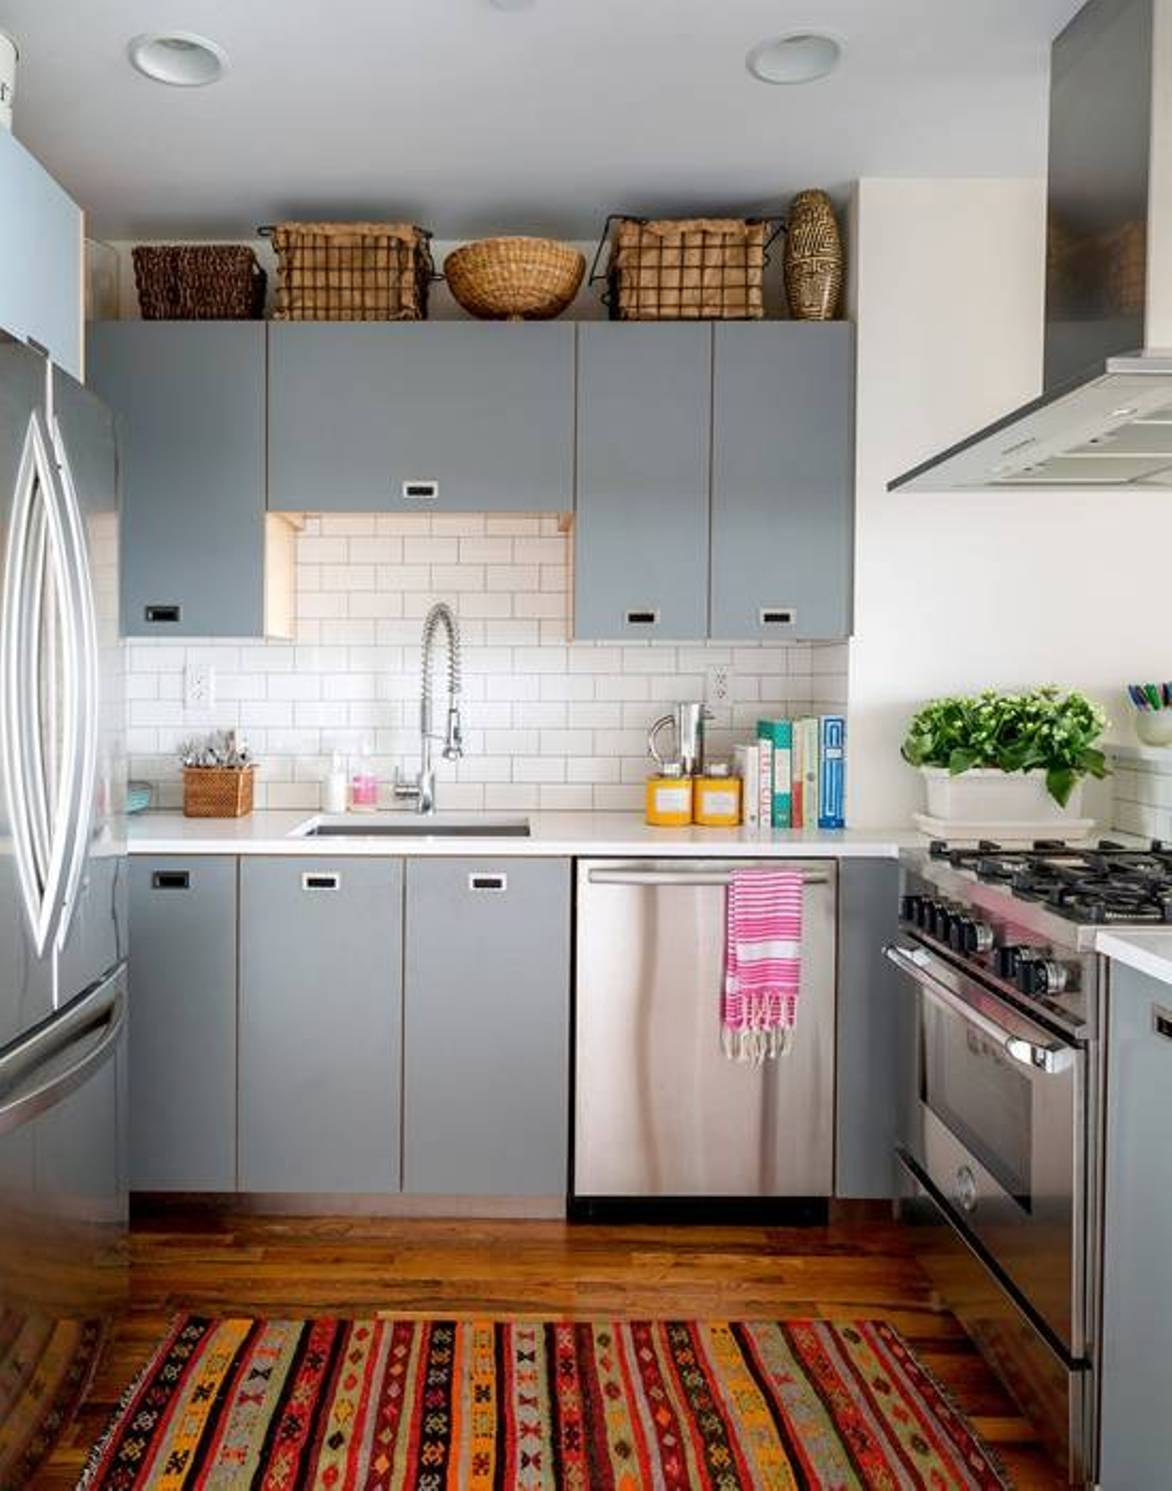 Beautiful abodes small kitchen loads of character for Small kitchen cabinets